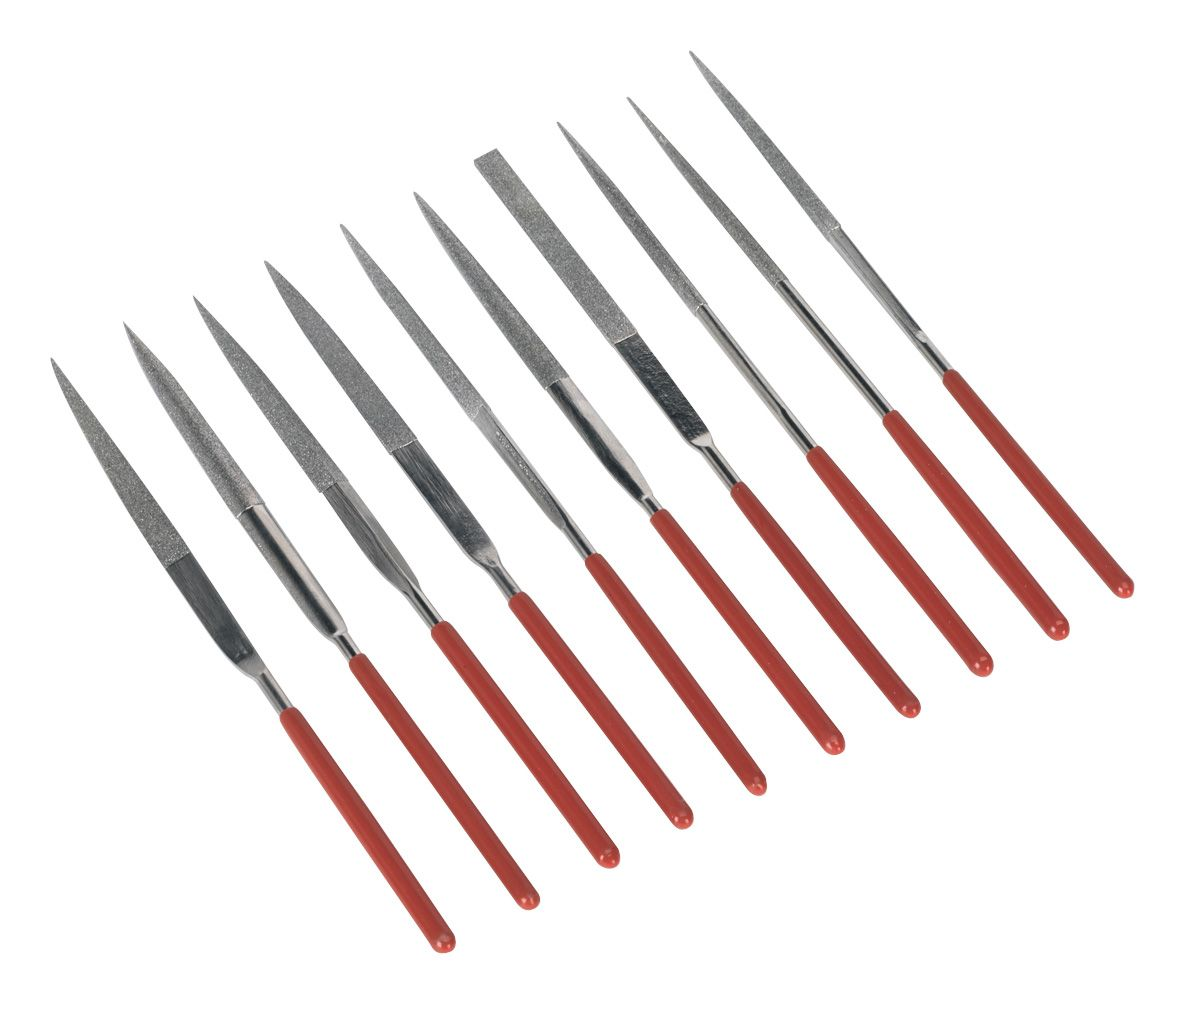 Sealey Diamond Needle File Set 10pc